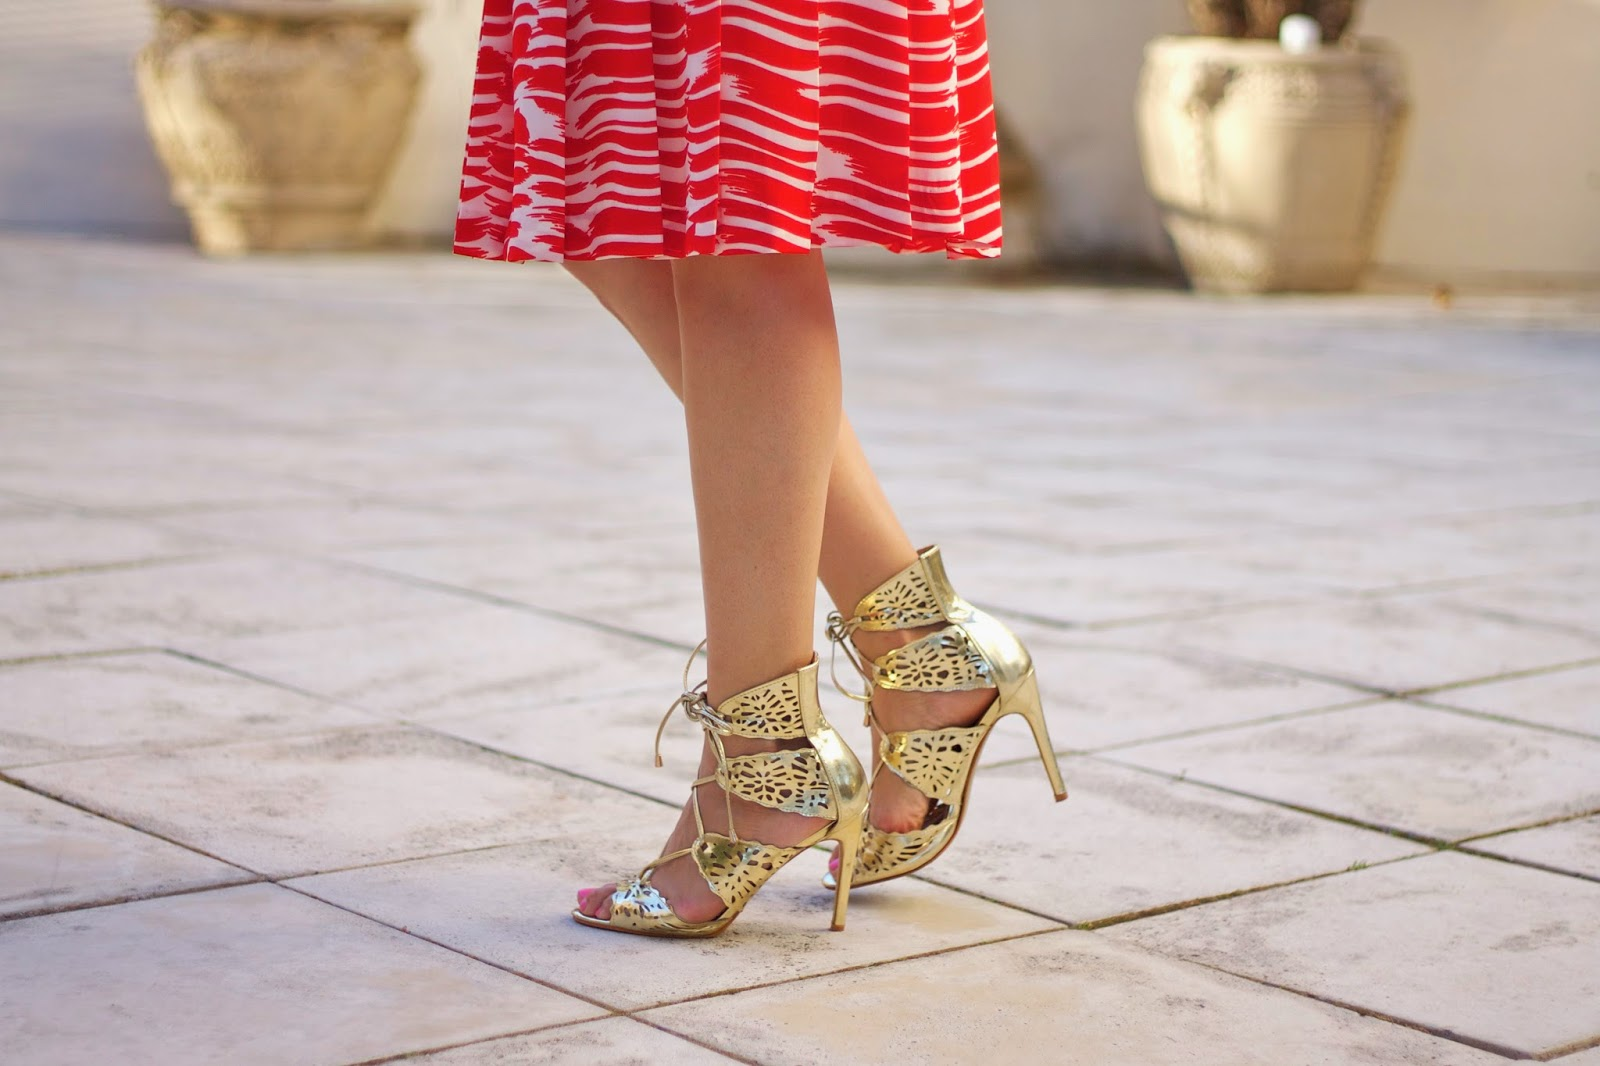 Shoedazzle shoes, shoedazzle flora heels in gold, shoedazzle flora heels, gold lace up heels, how to wear lace up heels